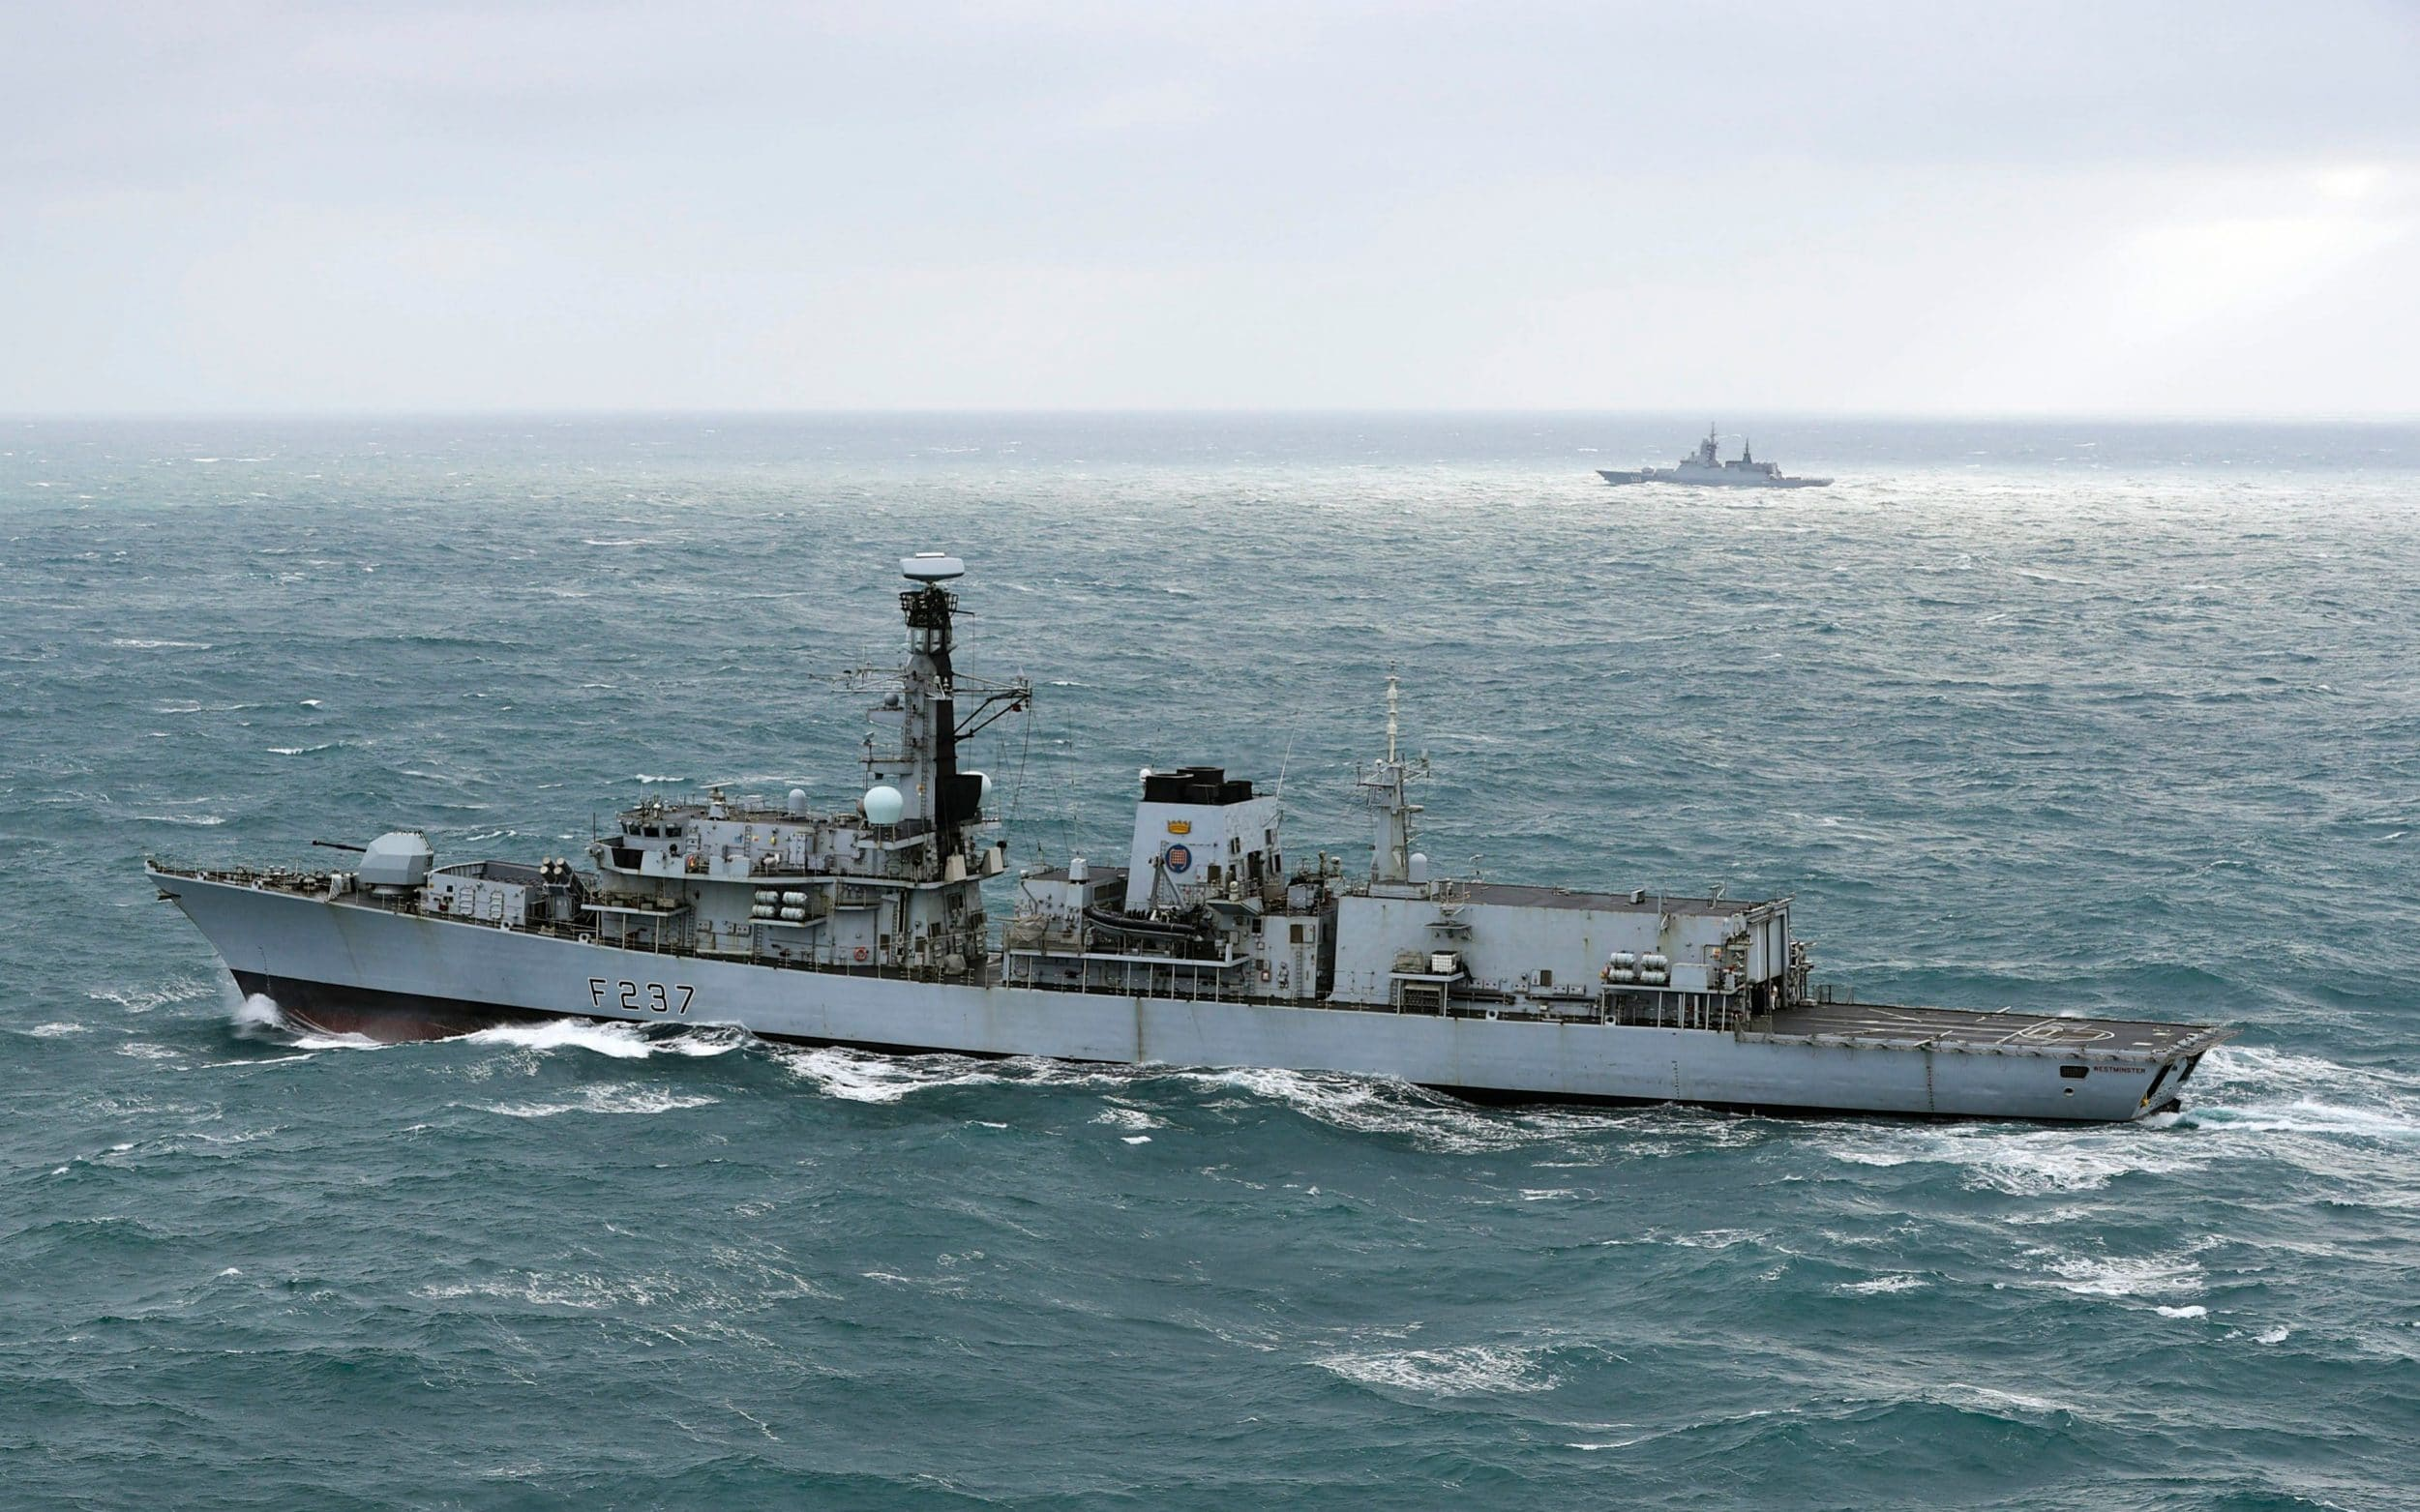 Royal Navy intercepts Russian naval ships in English Channel